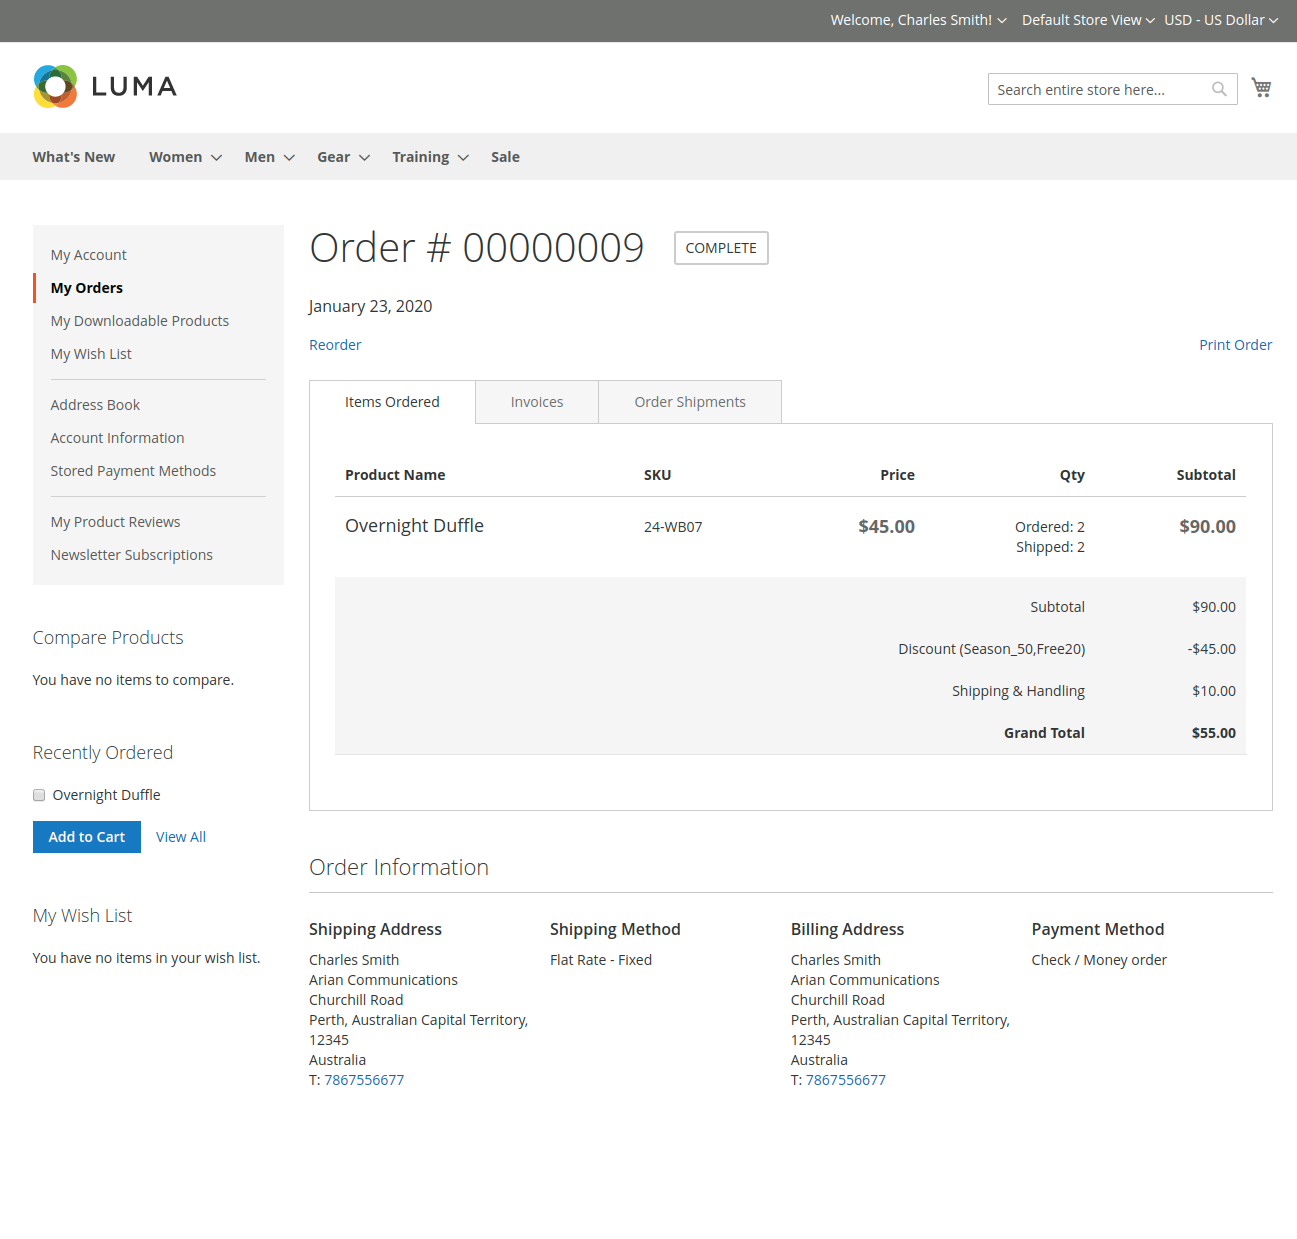 webkul-magento2-multiple-coupon-codes-customer-order-view